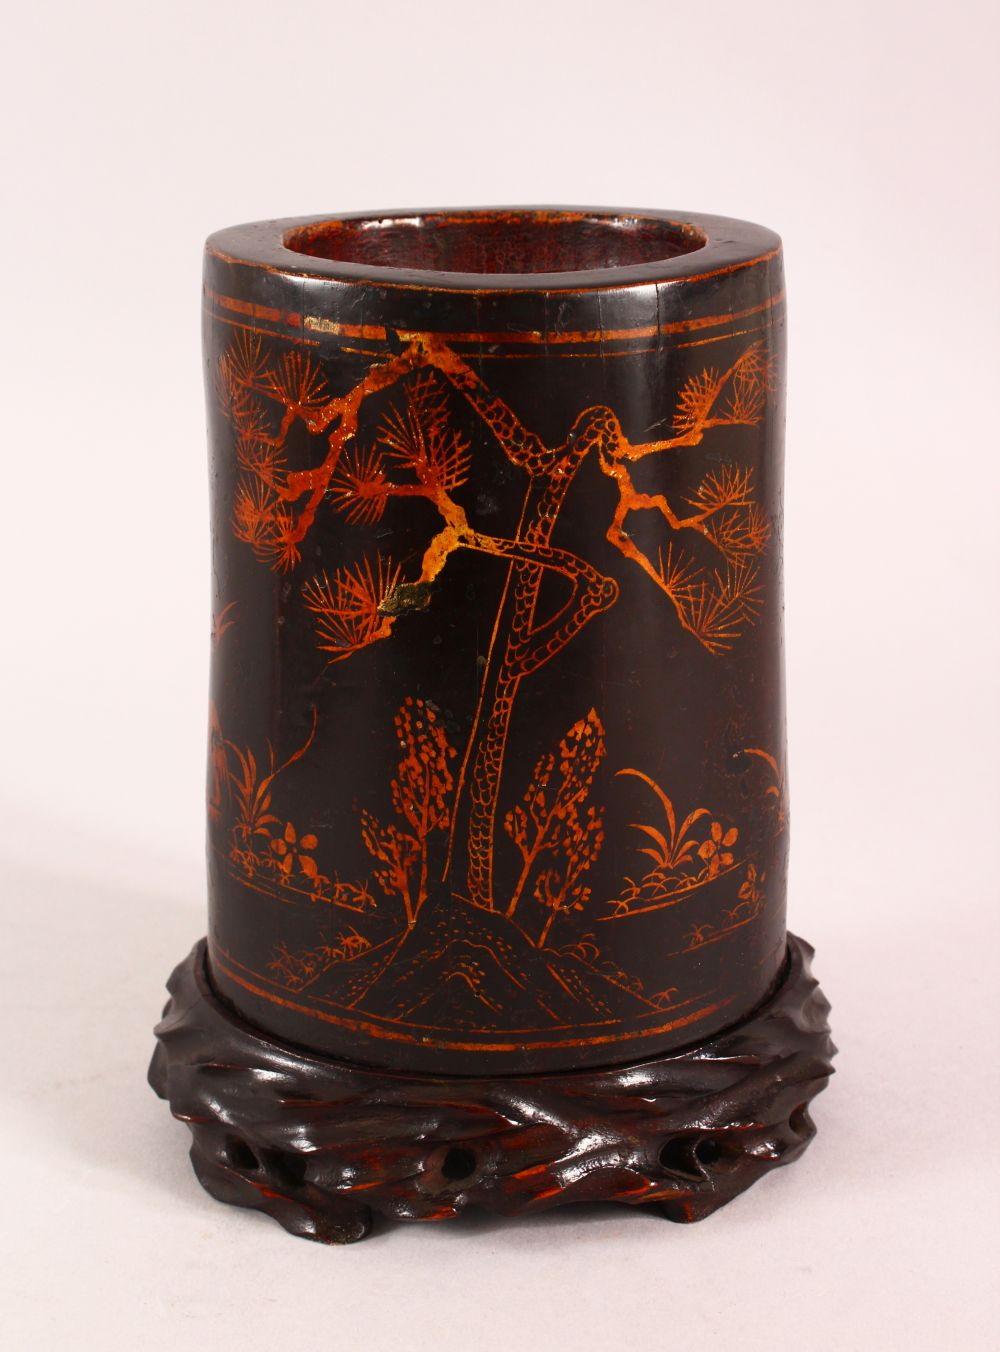 A CHINESE LACQUERED BAMBOO BRUSH WASH AND STAND, the body decorated with birds in landscapes, 19cm